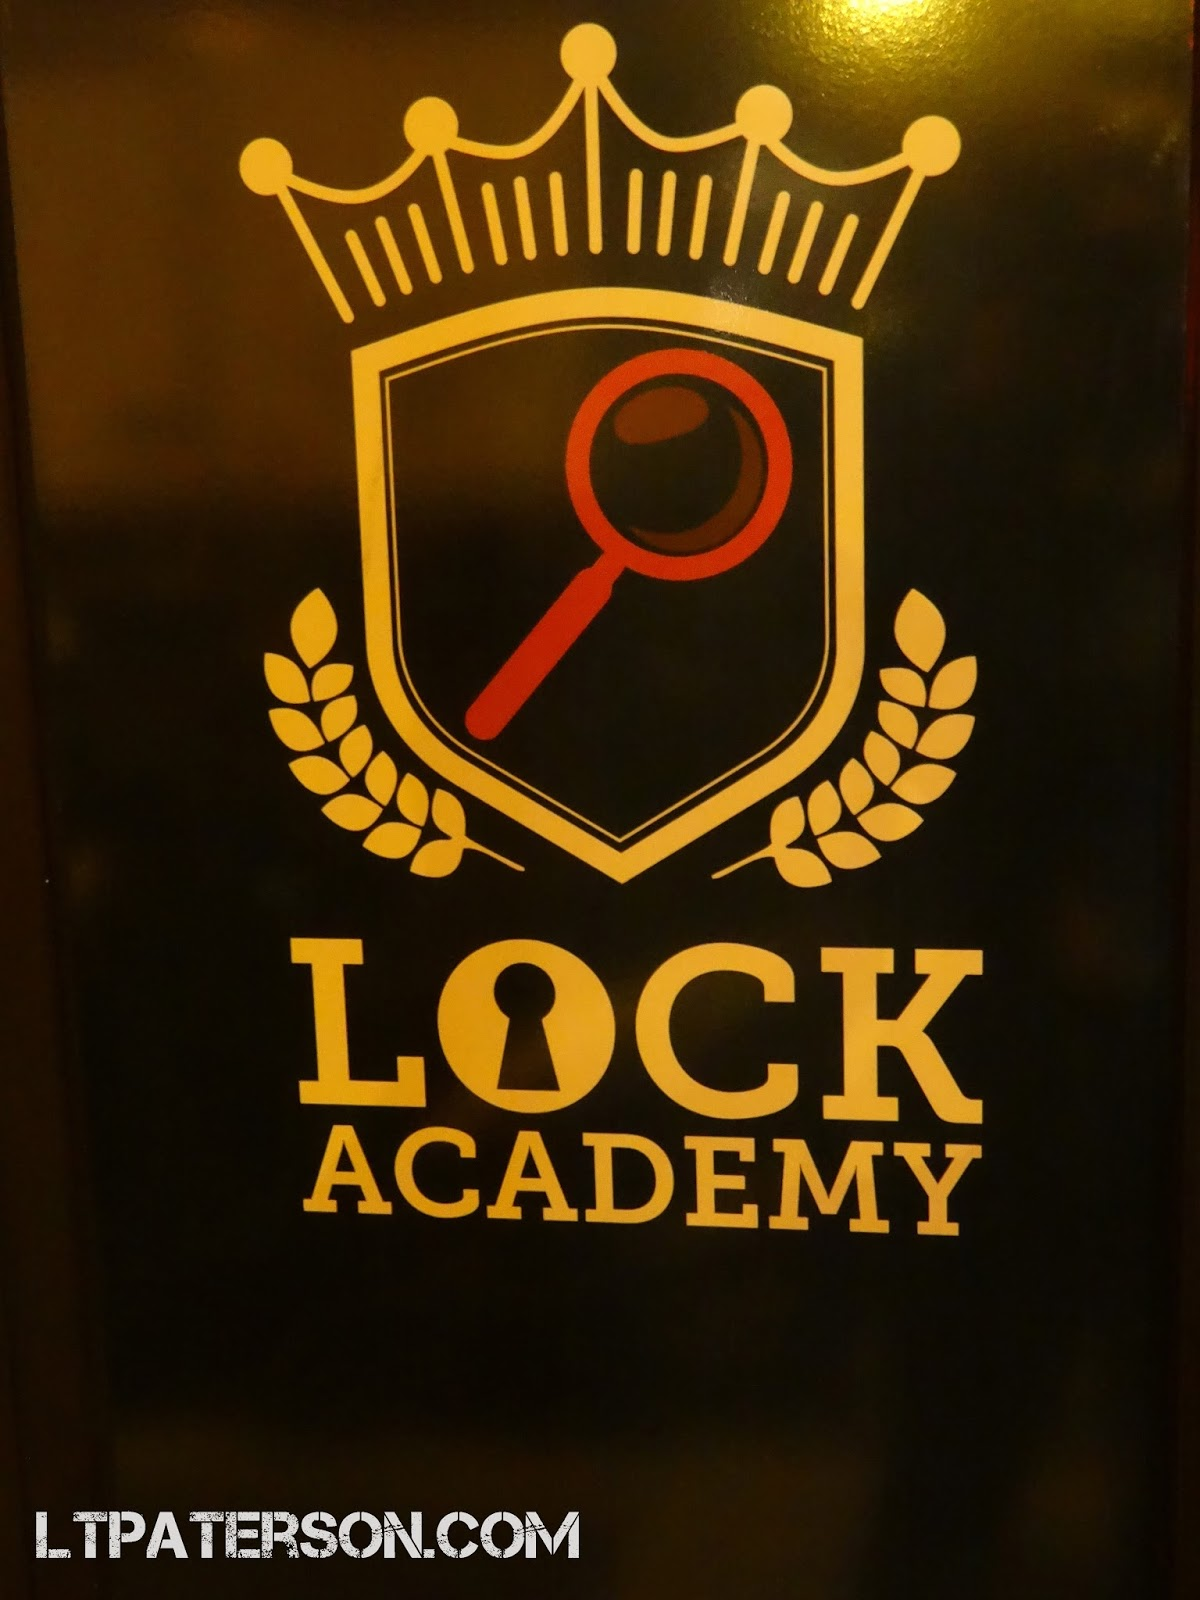 avis sur l 39 escape game lock academy blog jeux video pc high tech cinema. Black Bedroom Furniture Sets. Home Design Ideas